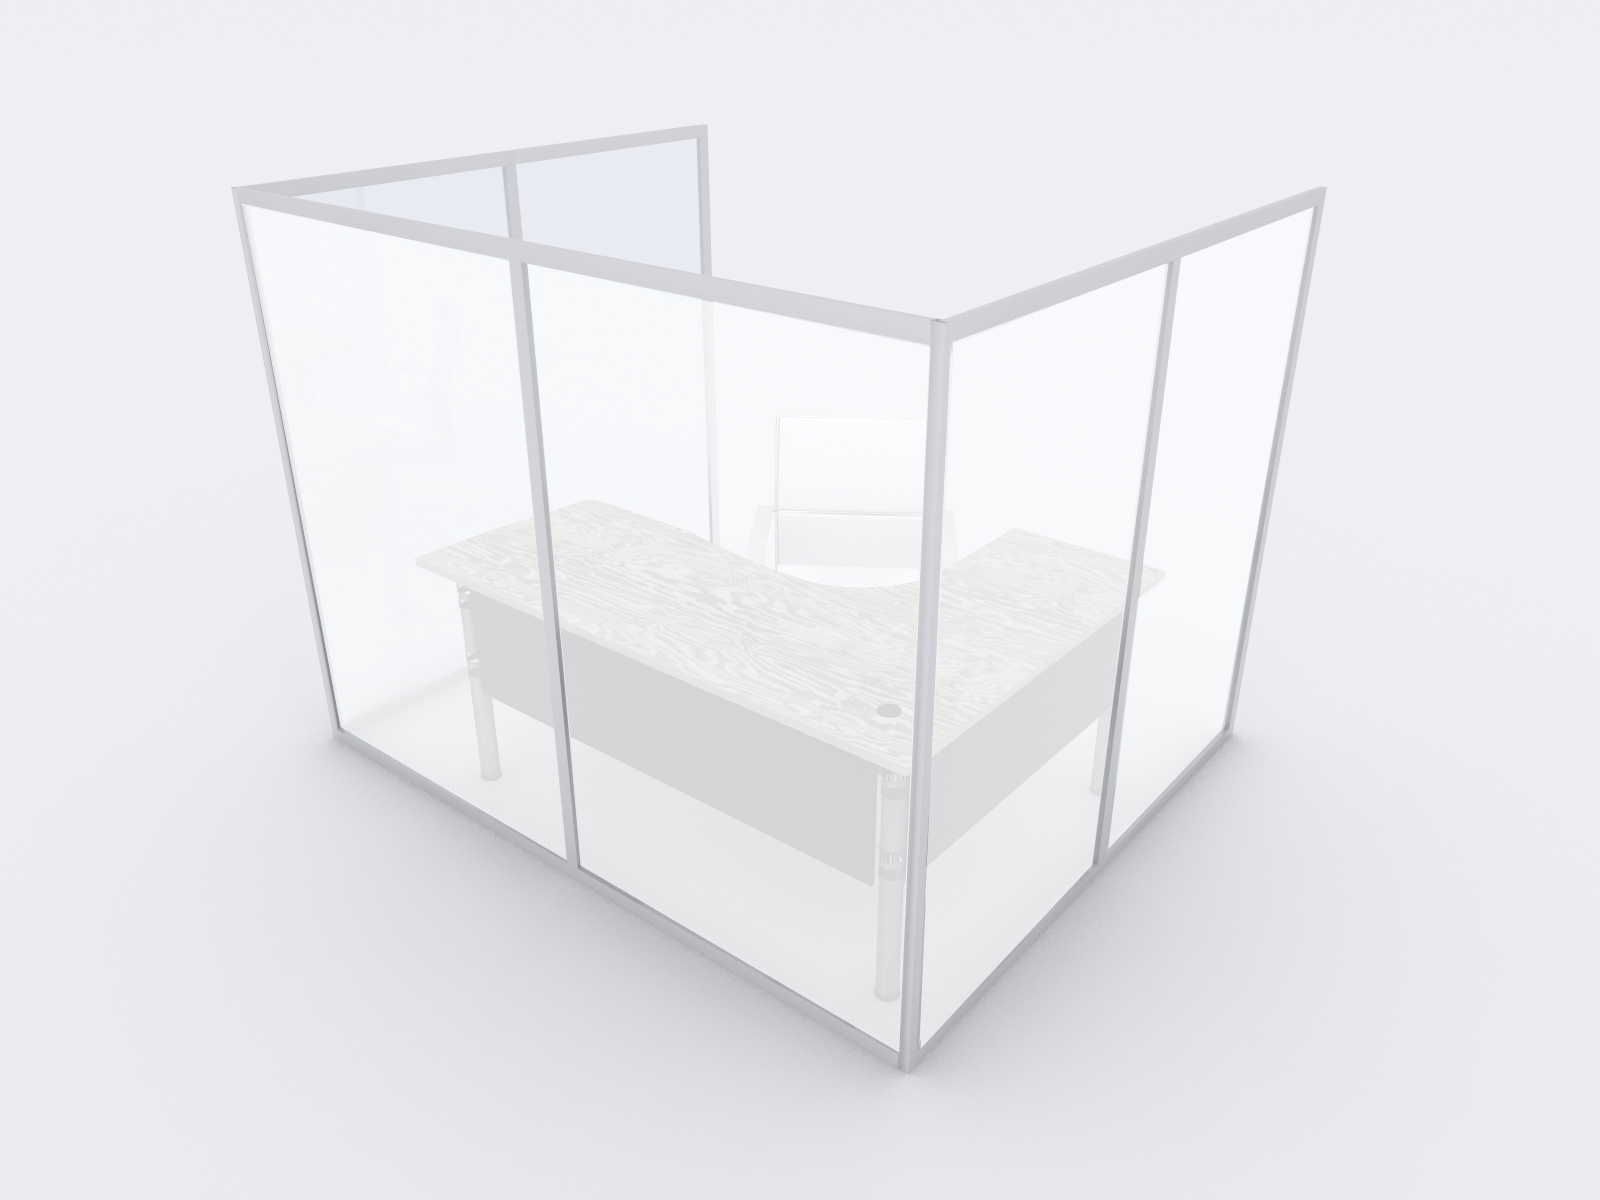 050520-Office-Pod-Single-Modul-38-and-46x72-View-40000_Frosted